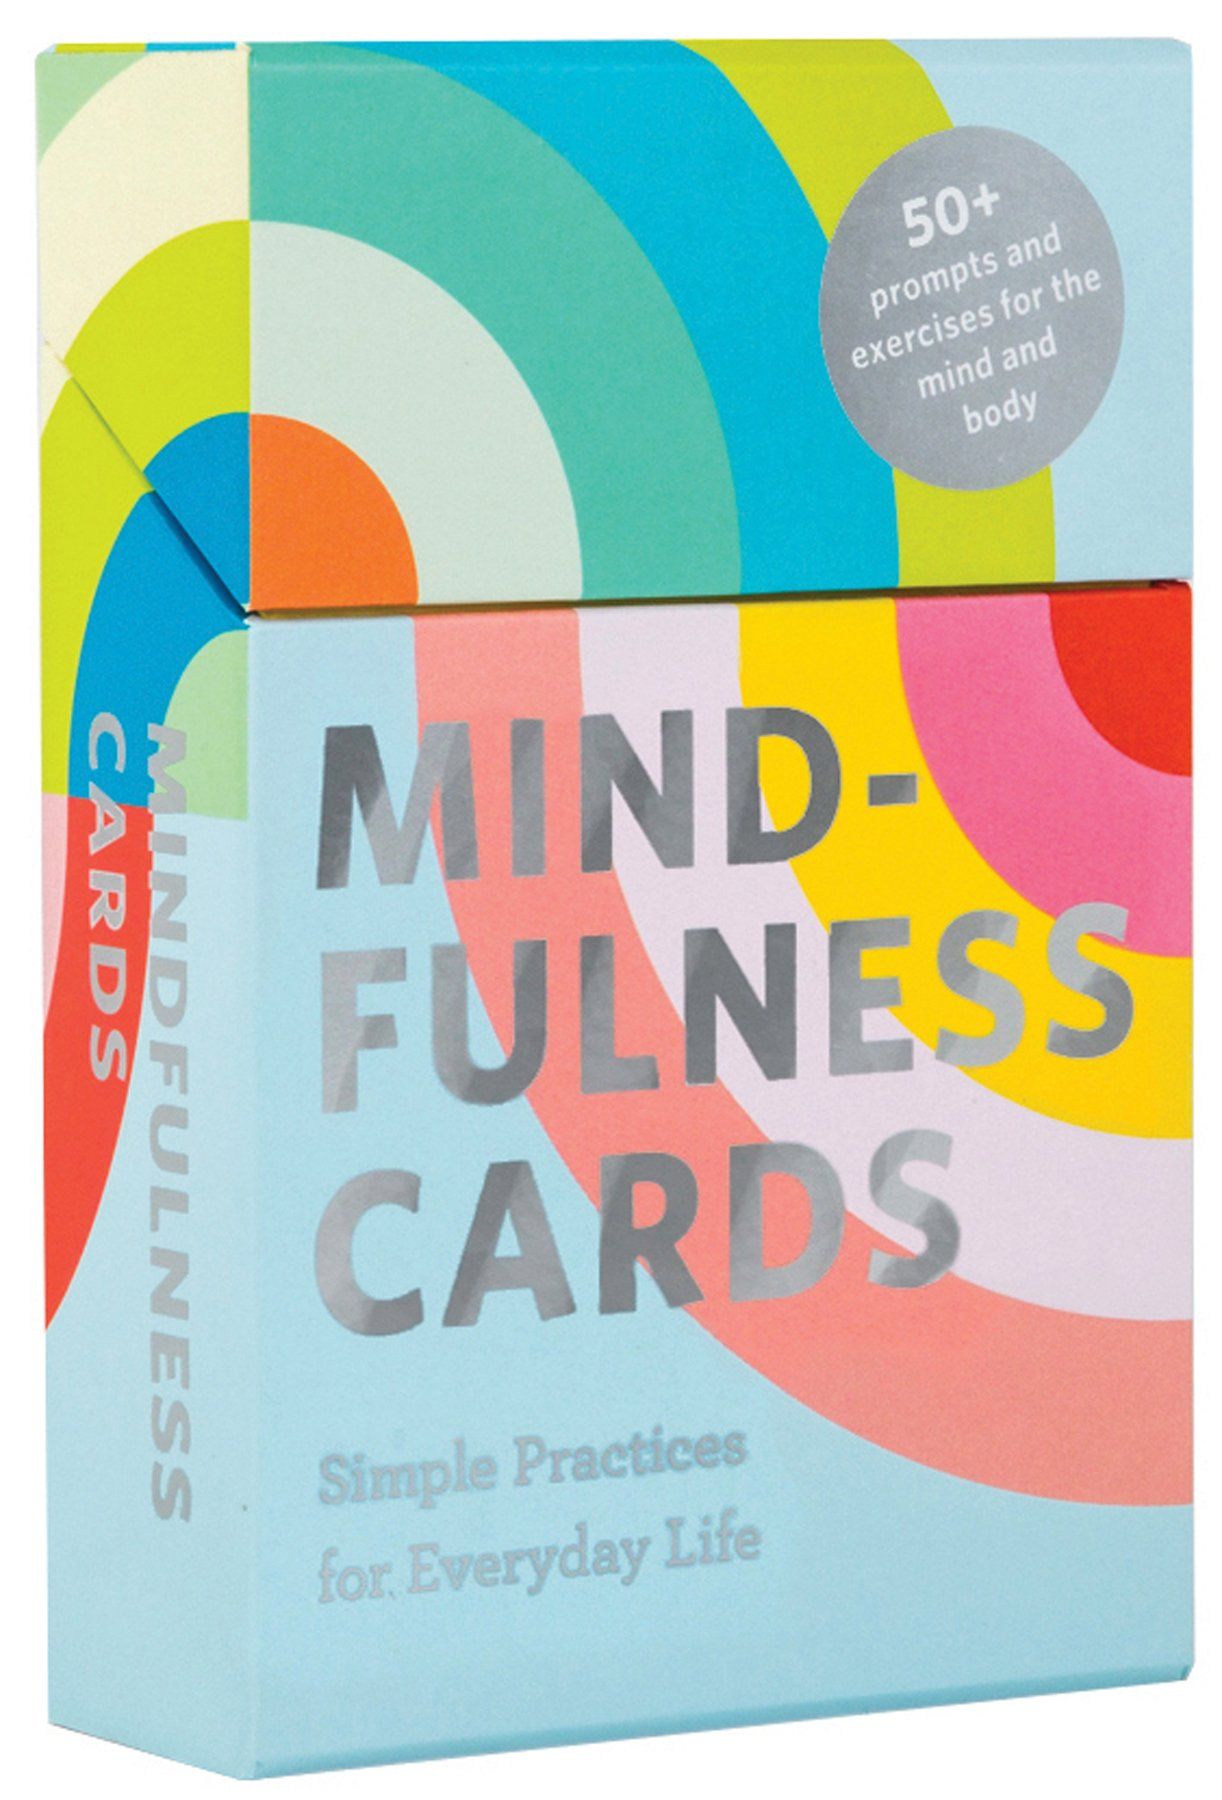 Mindfulness cards for self care and wellness.